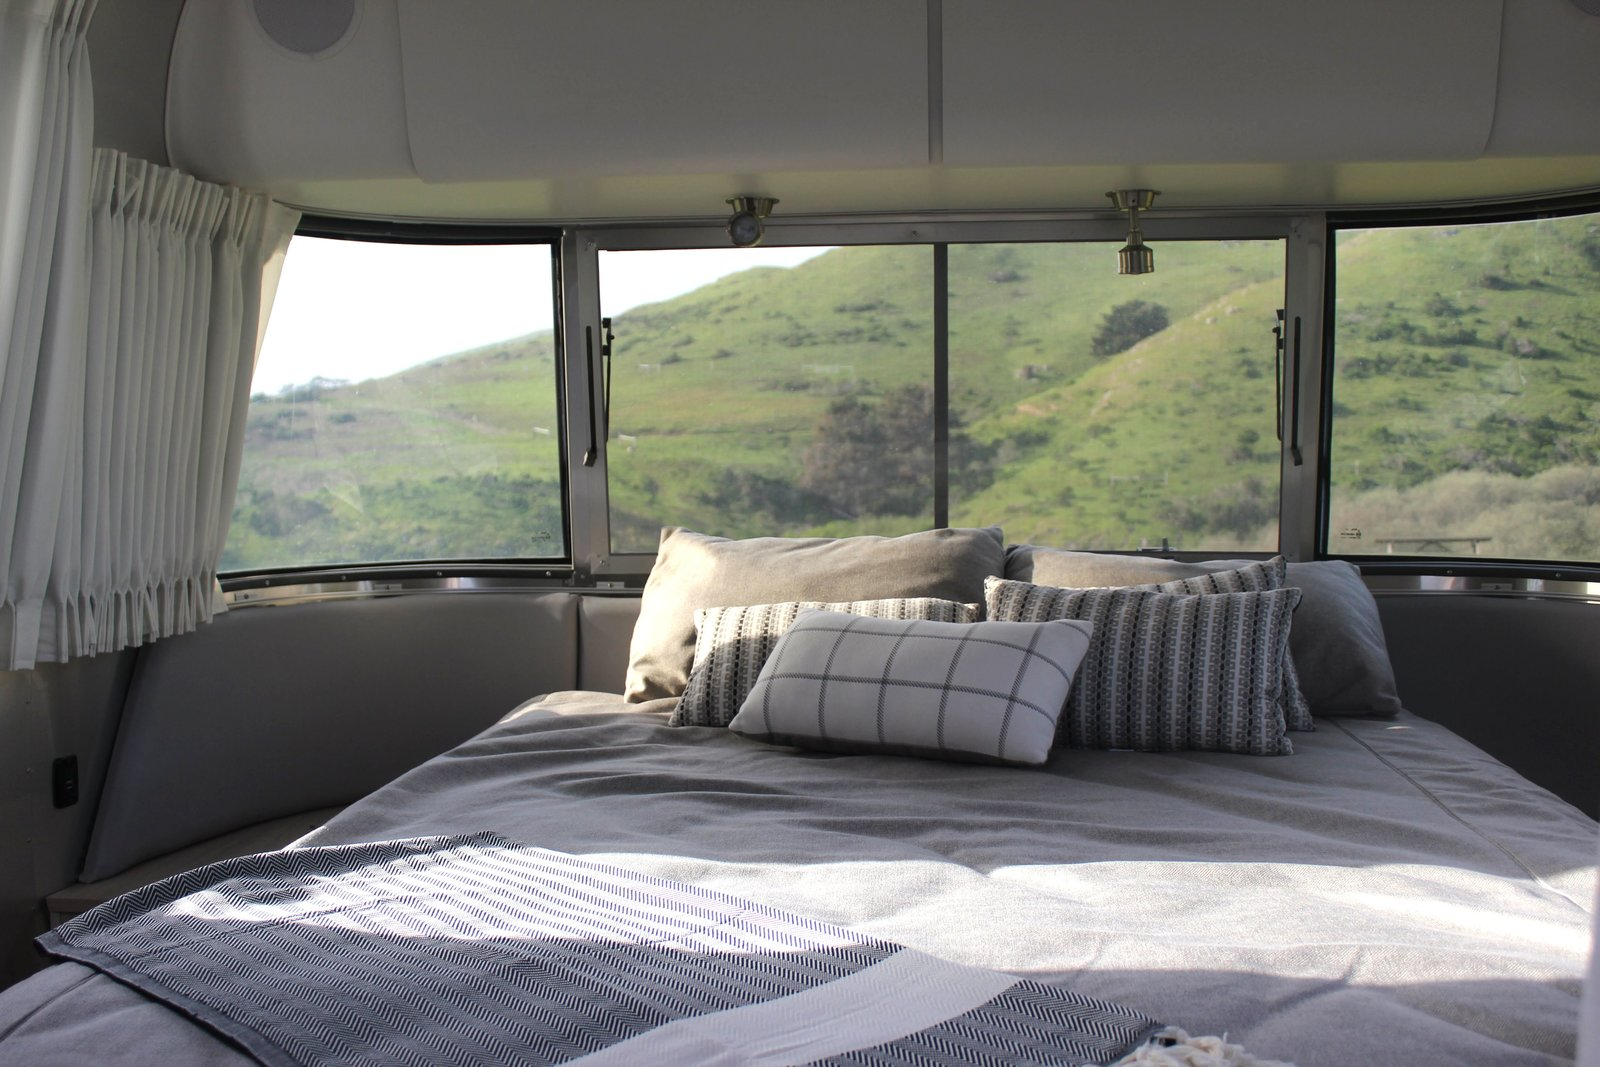 Bedroom, Bed, and Ceiling Lighting Panoramic windows allow the lush hills to act as our headboard, while blackout curtains ensure a good night's sleep. Low-profile nightstands and overhead cabinets offer additional storage.  Photo 6 of 17 in Bodega Bay or Bust: Taking the Airstream Globetrotter to Northern California's Coastal Gem